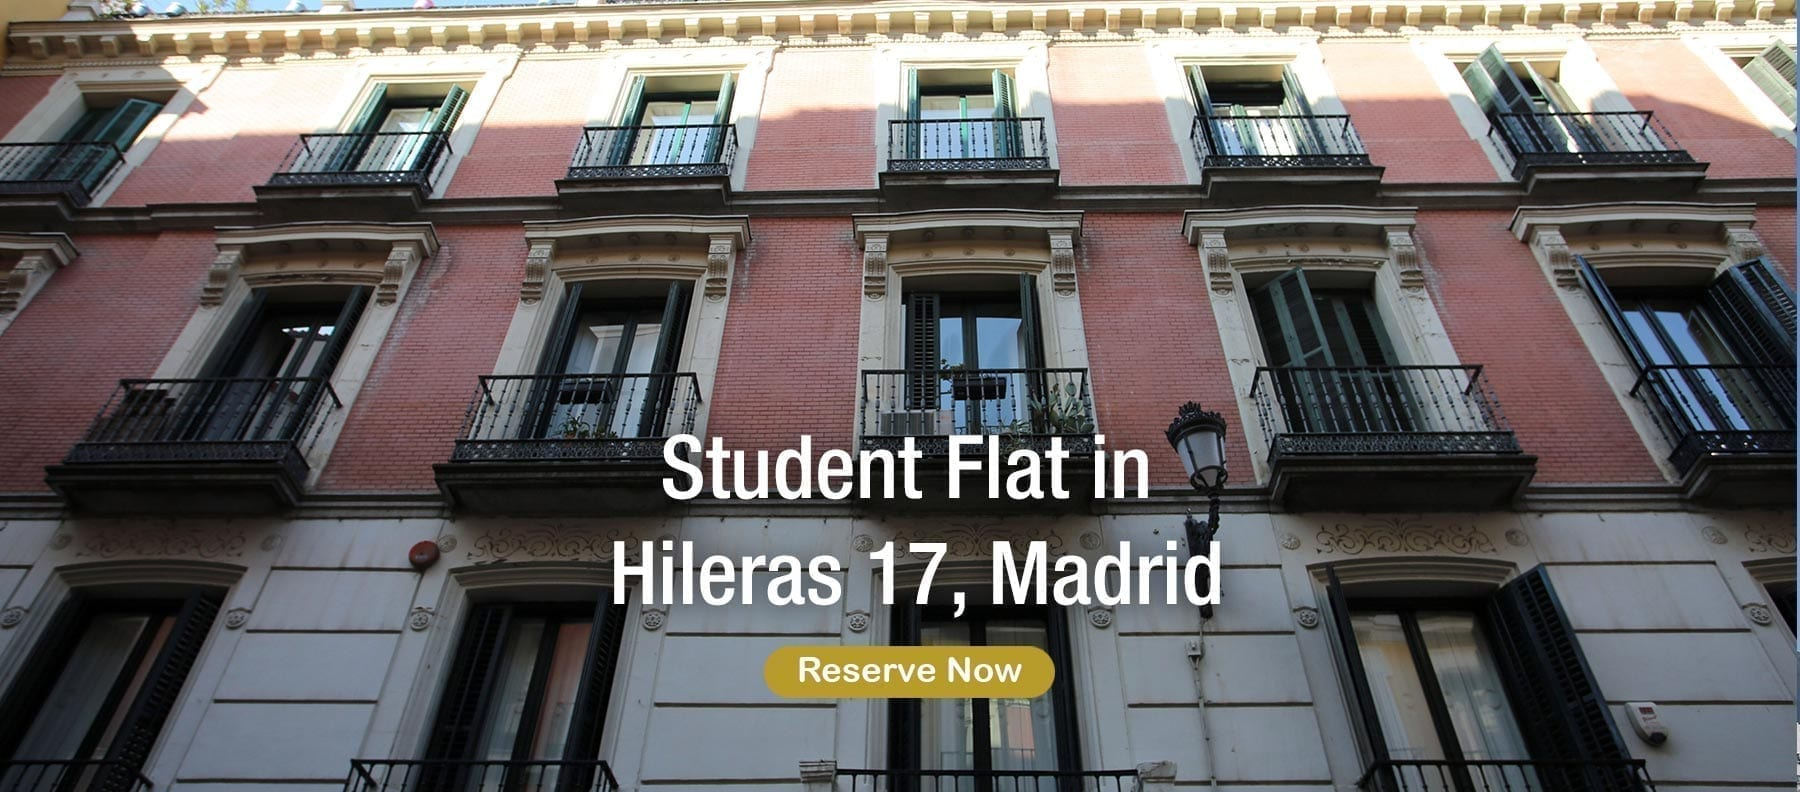 flat for students in hileras 17 Madrid